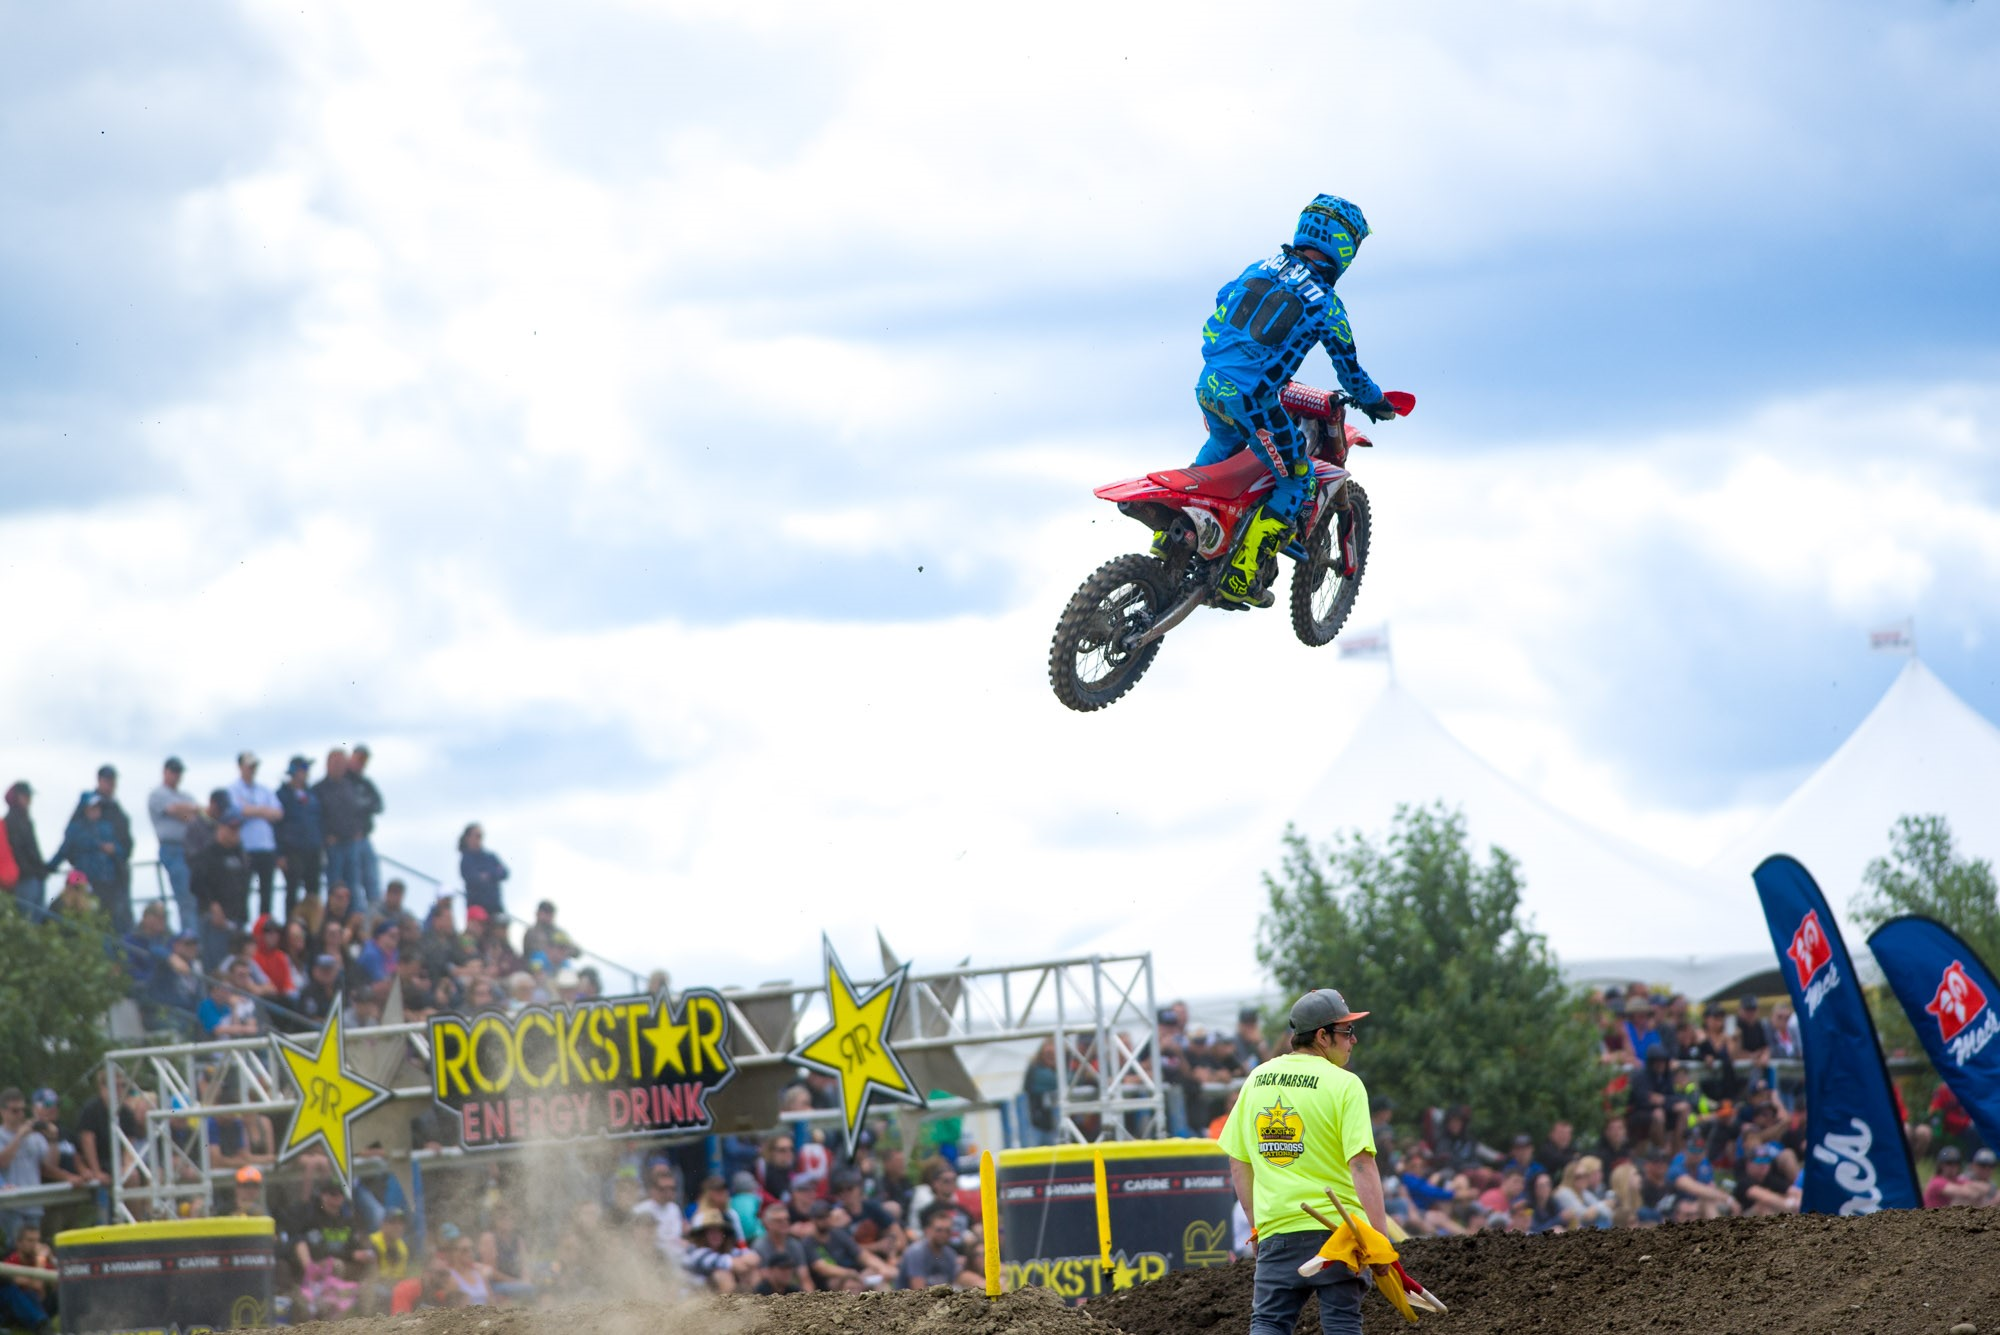 Honda Canada GDR Fox Racing's Colton Facciotti 4-2 moto scores earned him third overall on the day.